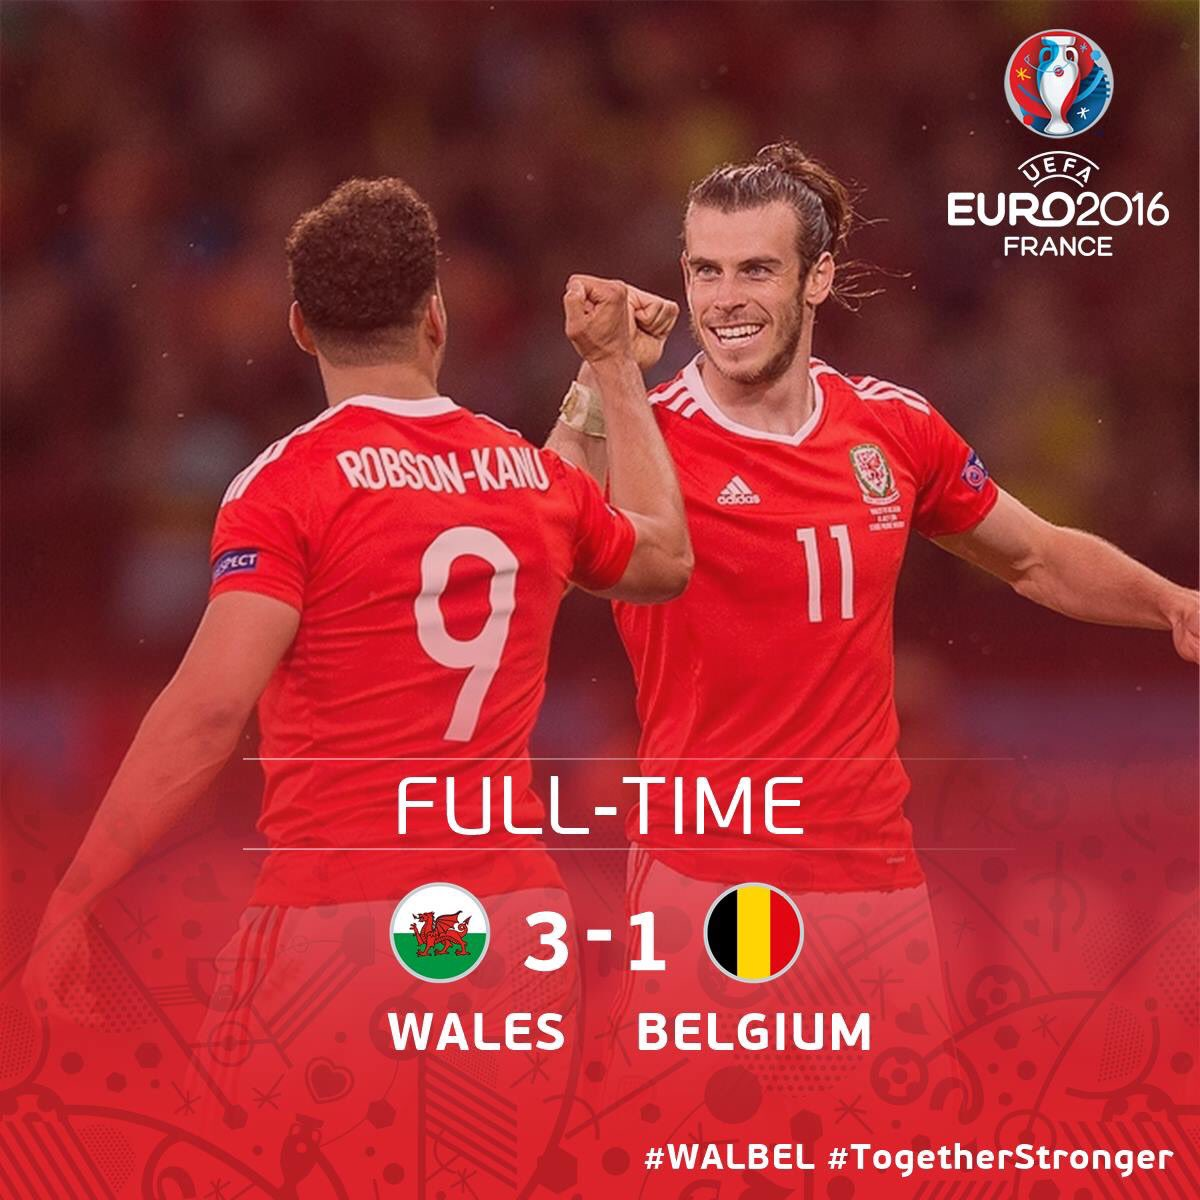 THE MOST FAMOUS NIGHT IN WELSH FOOTBALL HISTORY #WAL  3-1 #BEL  WE ARE INTO THE SEMI-FINALS!!!! #TOGETHERSTRONGER https://t.co/LIHCyXtAce